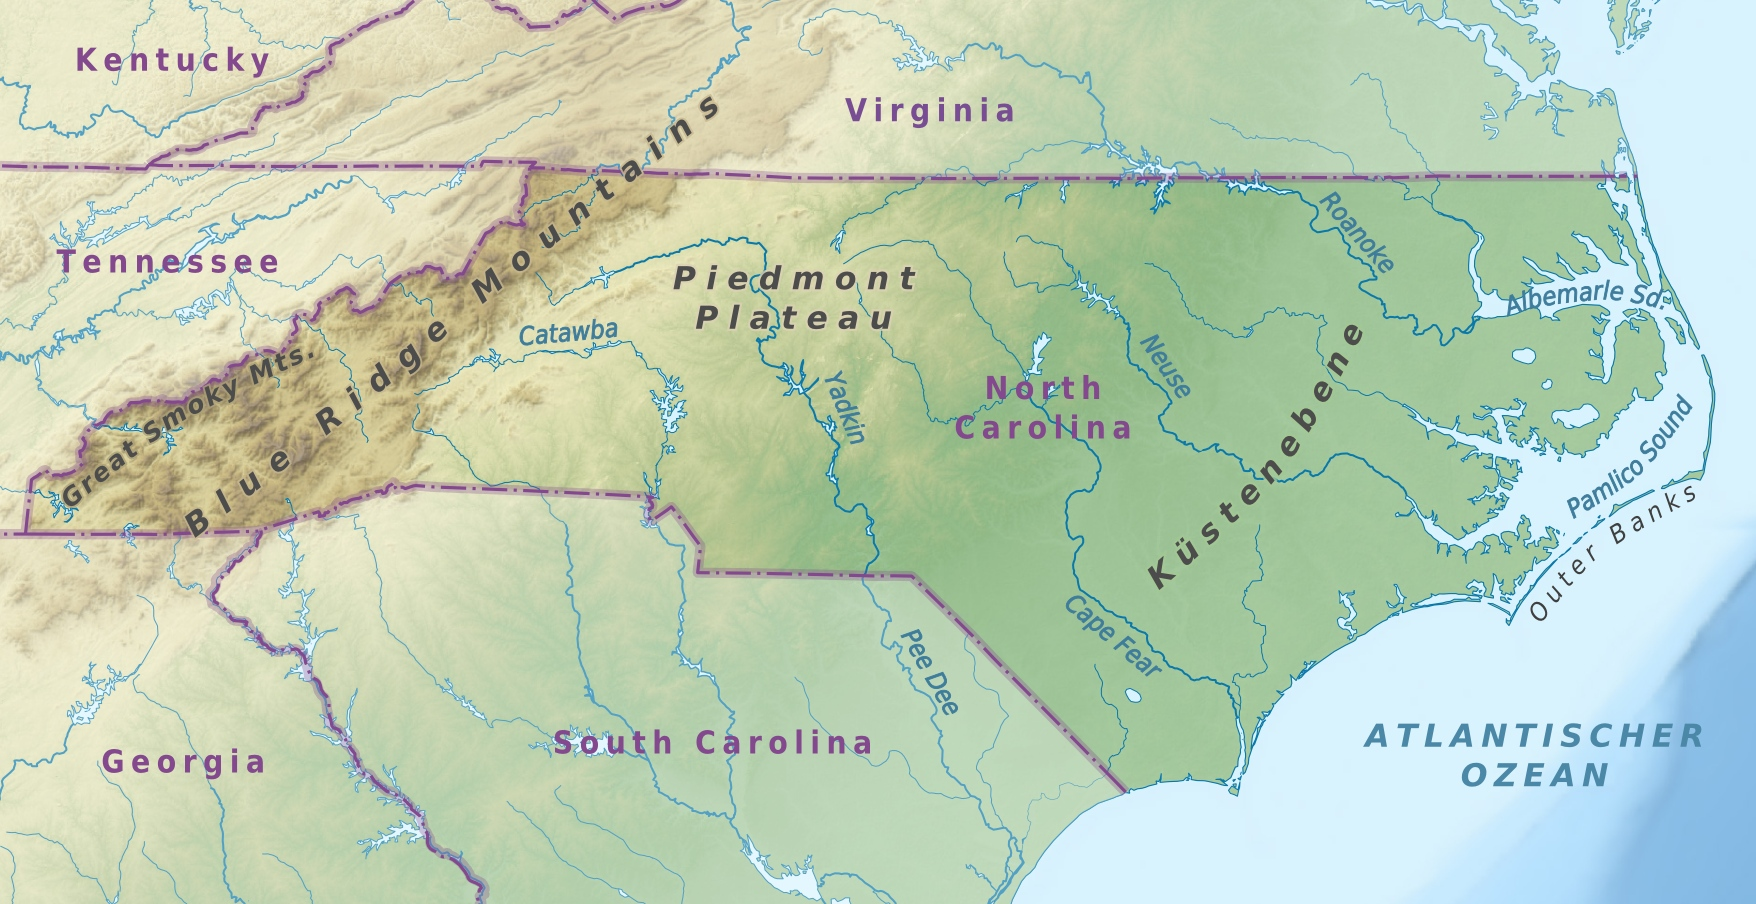 FileUSA North Carolina Physical Mapjpg Wikimedia Commons - Virginia physical map